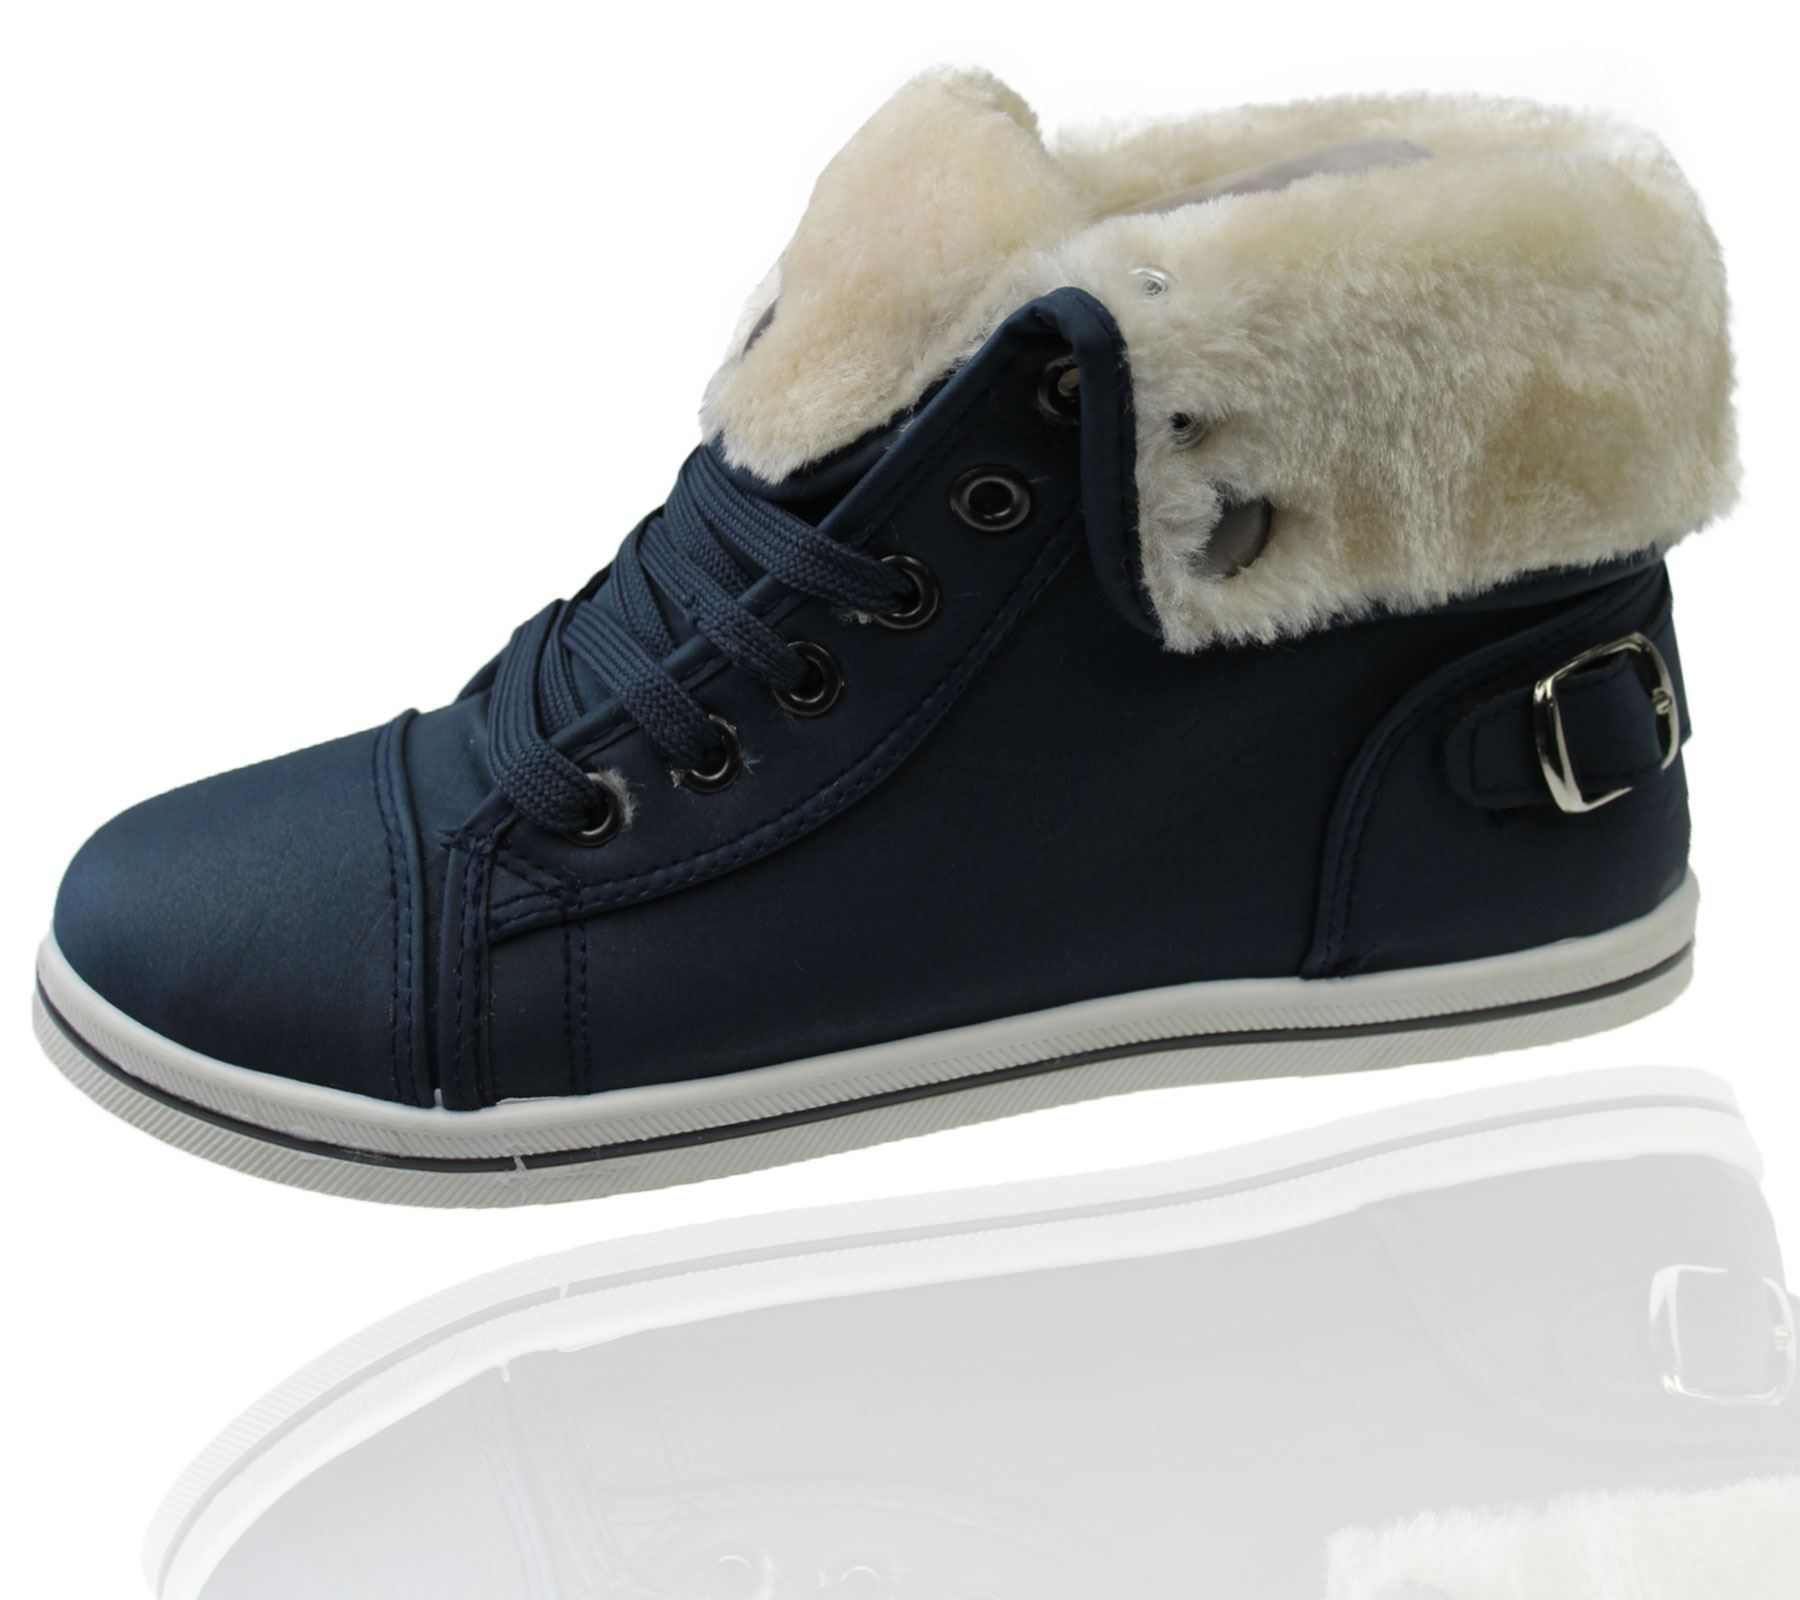 Girls-Boots-Womens-Warm-Lined-High-Top-Ankle-Trainer-Ladies-Winter-Shoes-Size miniatura 28